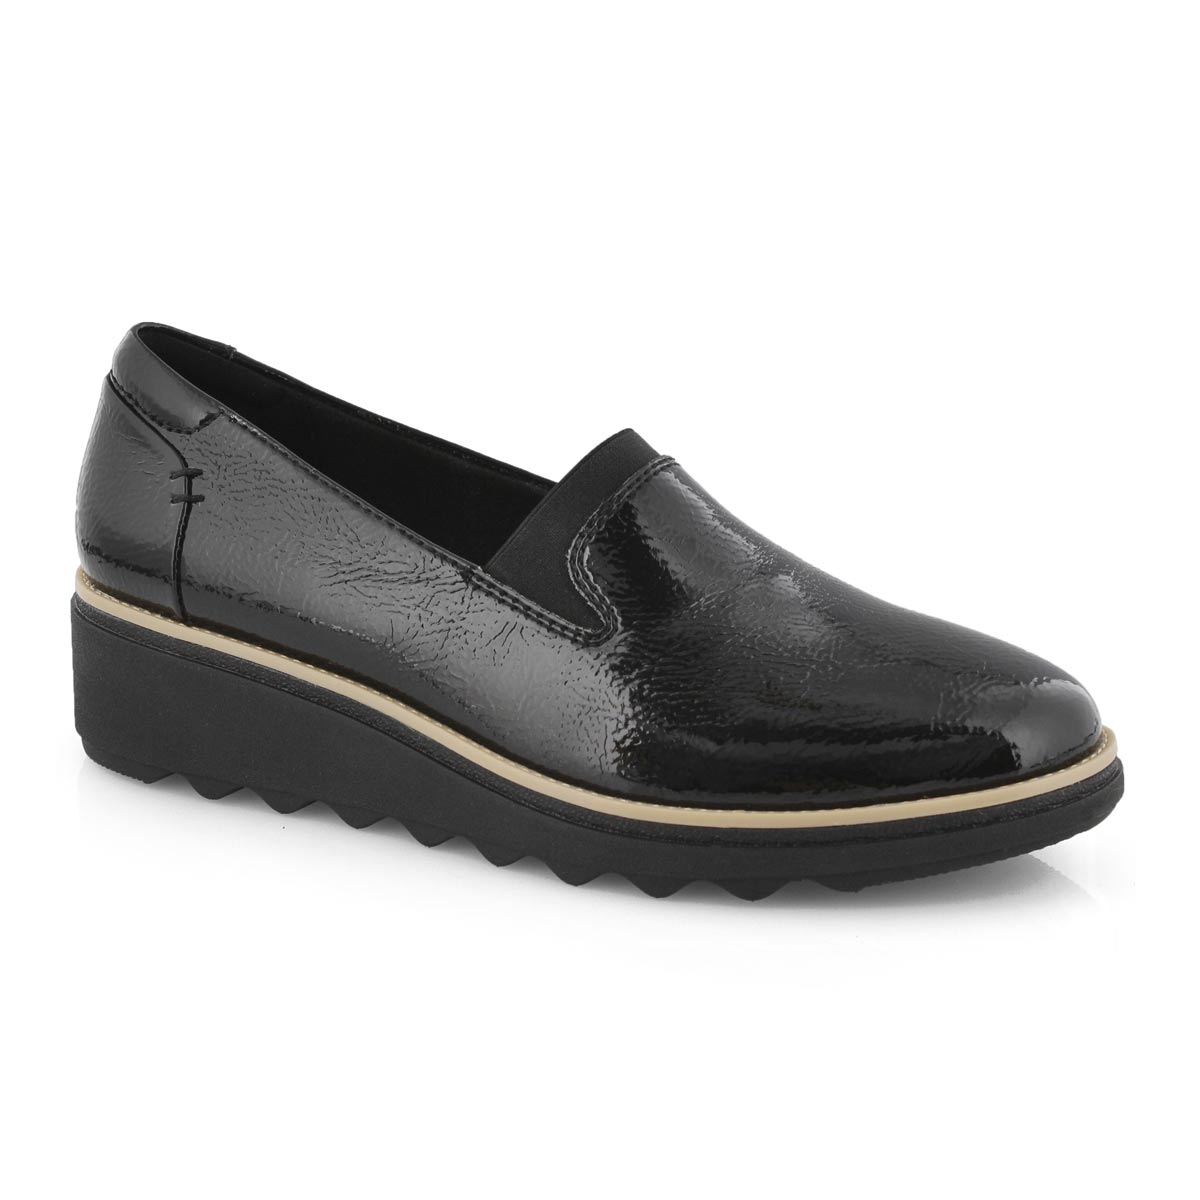 Lds Sharon Dolly black pat casual loafer